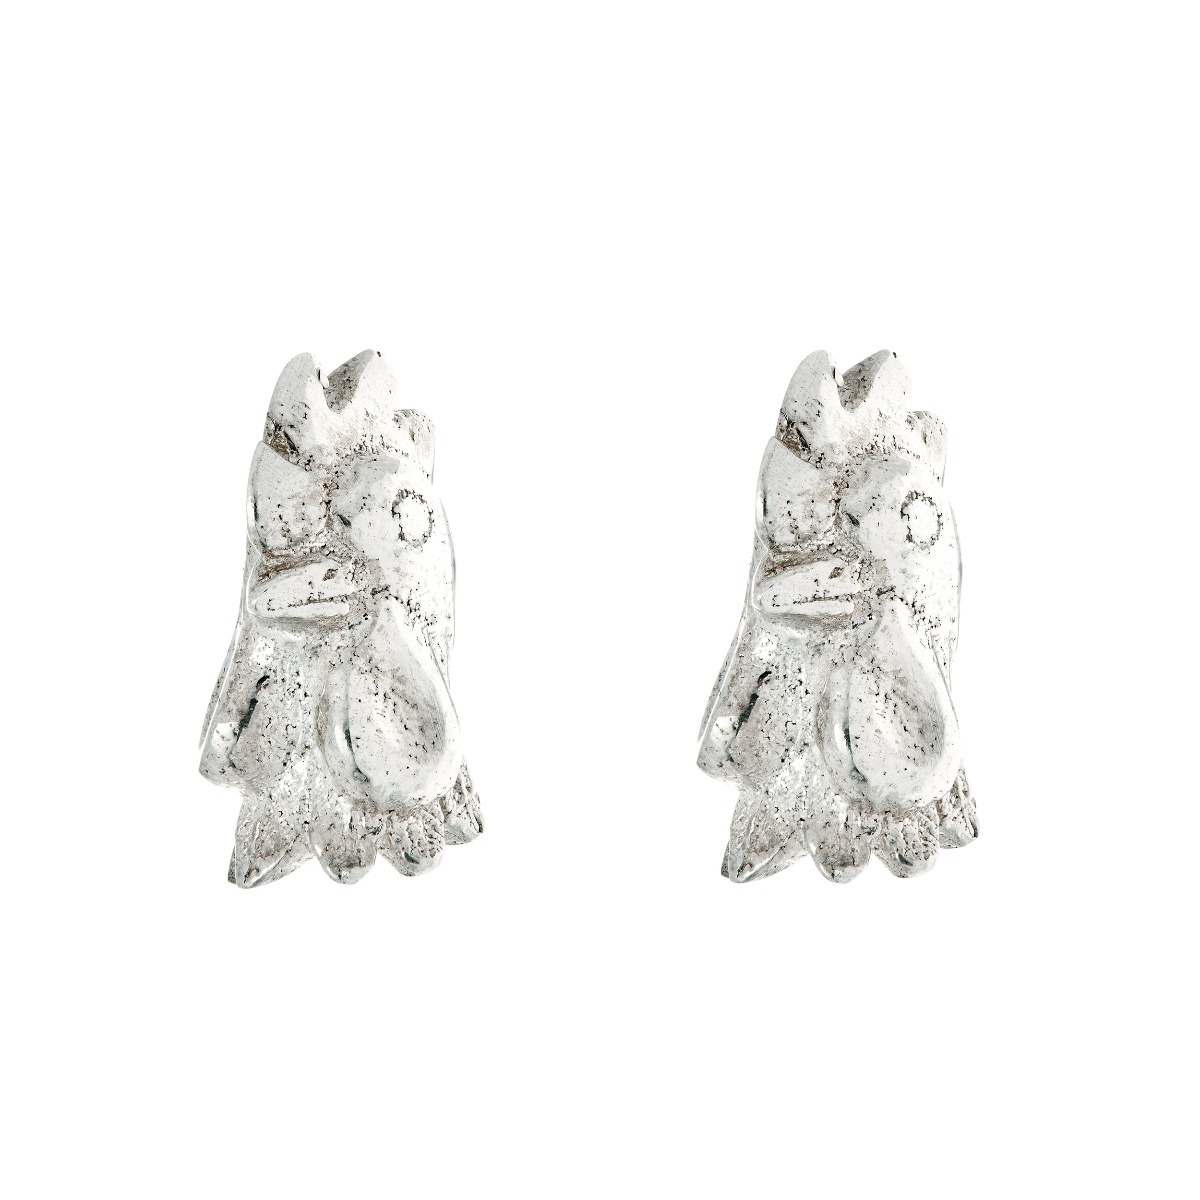 Chinese zodiac stud earrings (rooster)